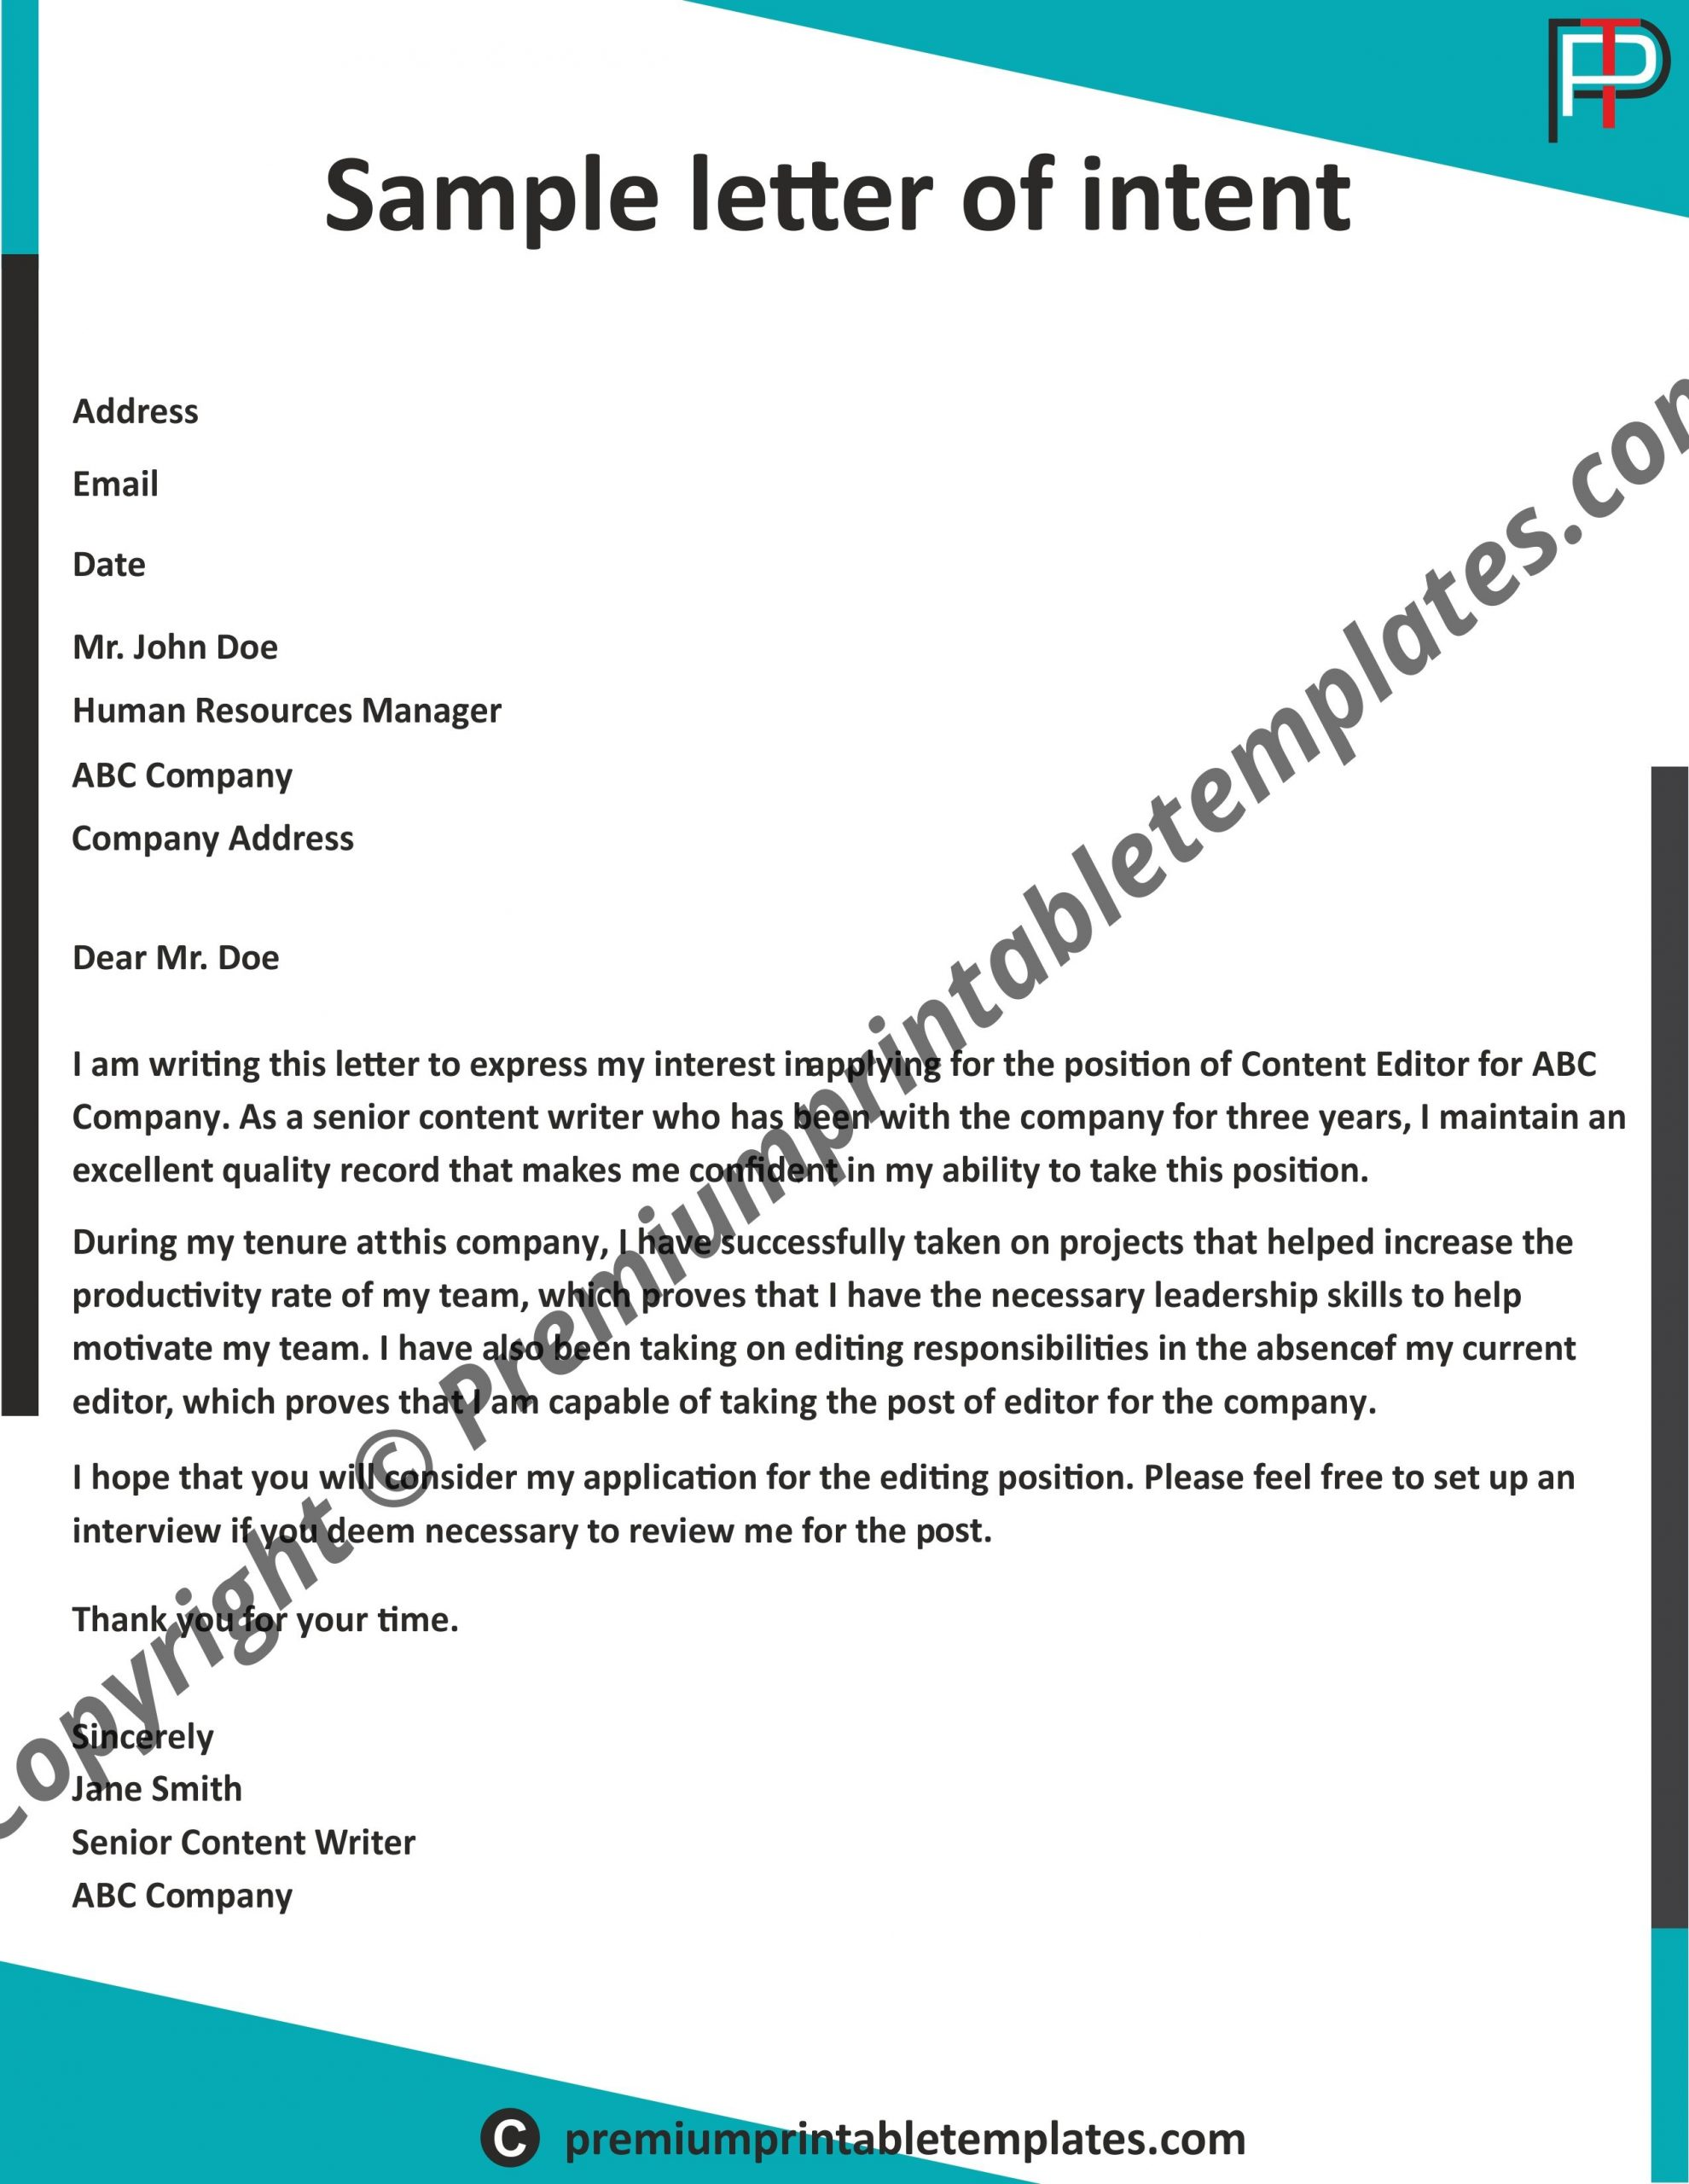 Letter Of Intent Templates from premiumprintabletemplates.com